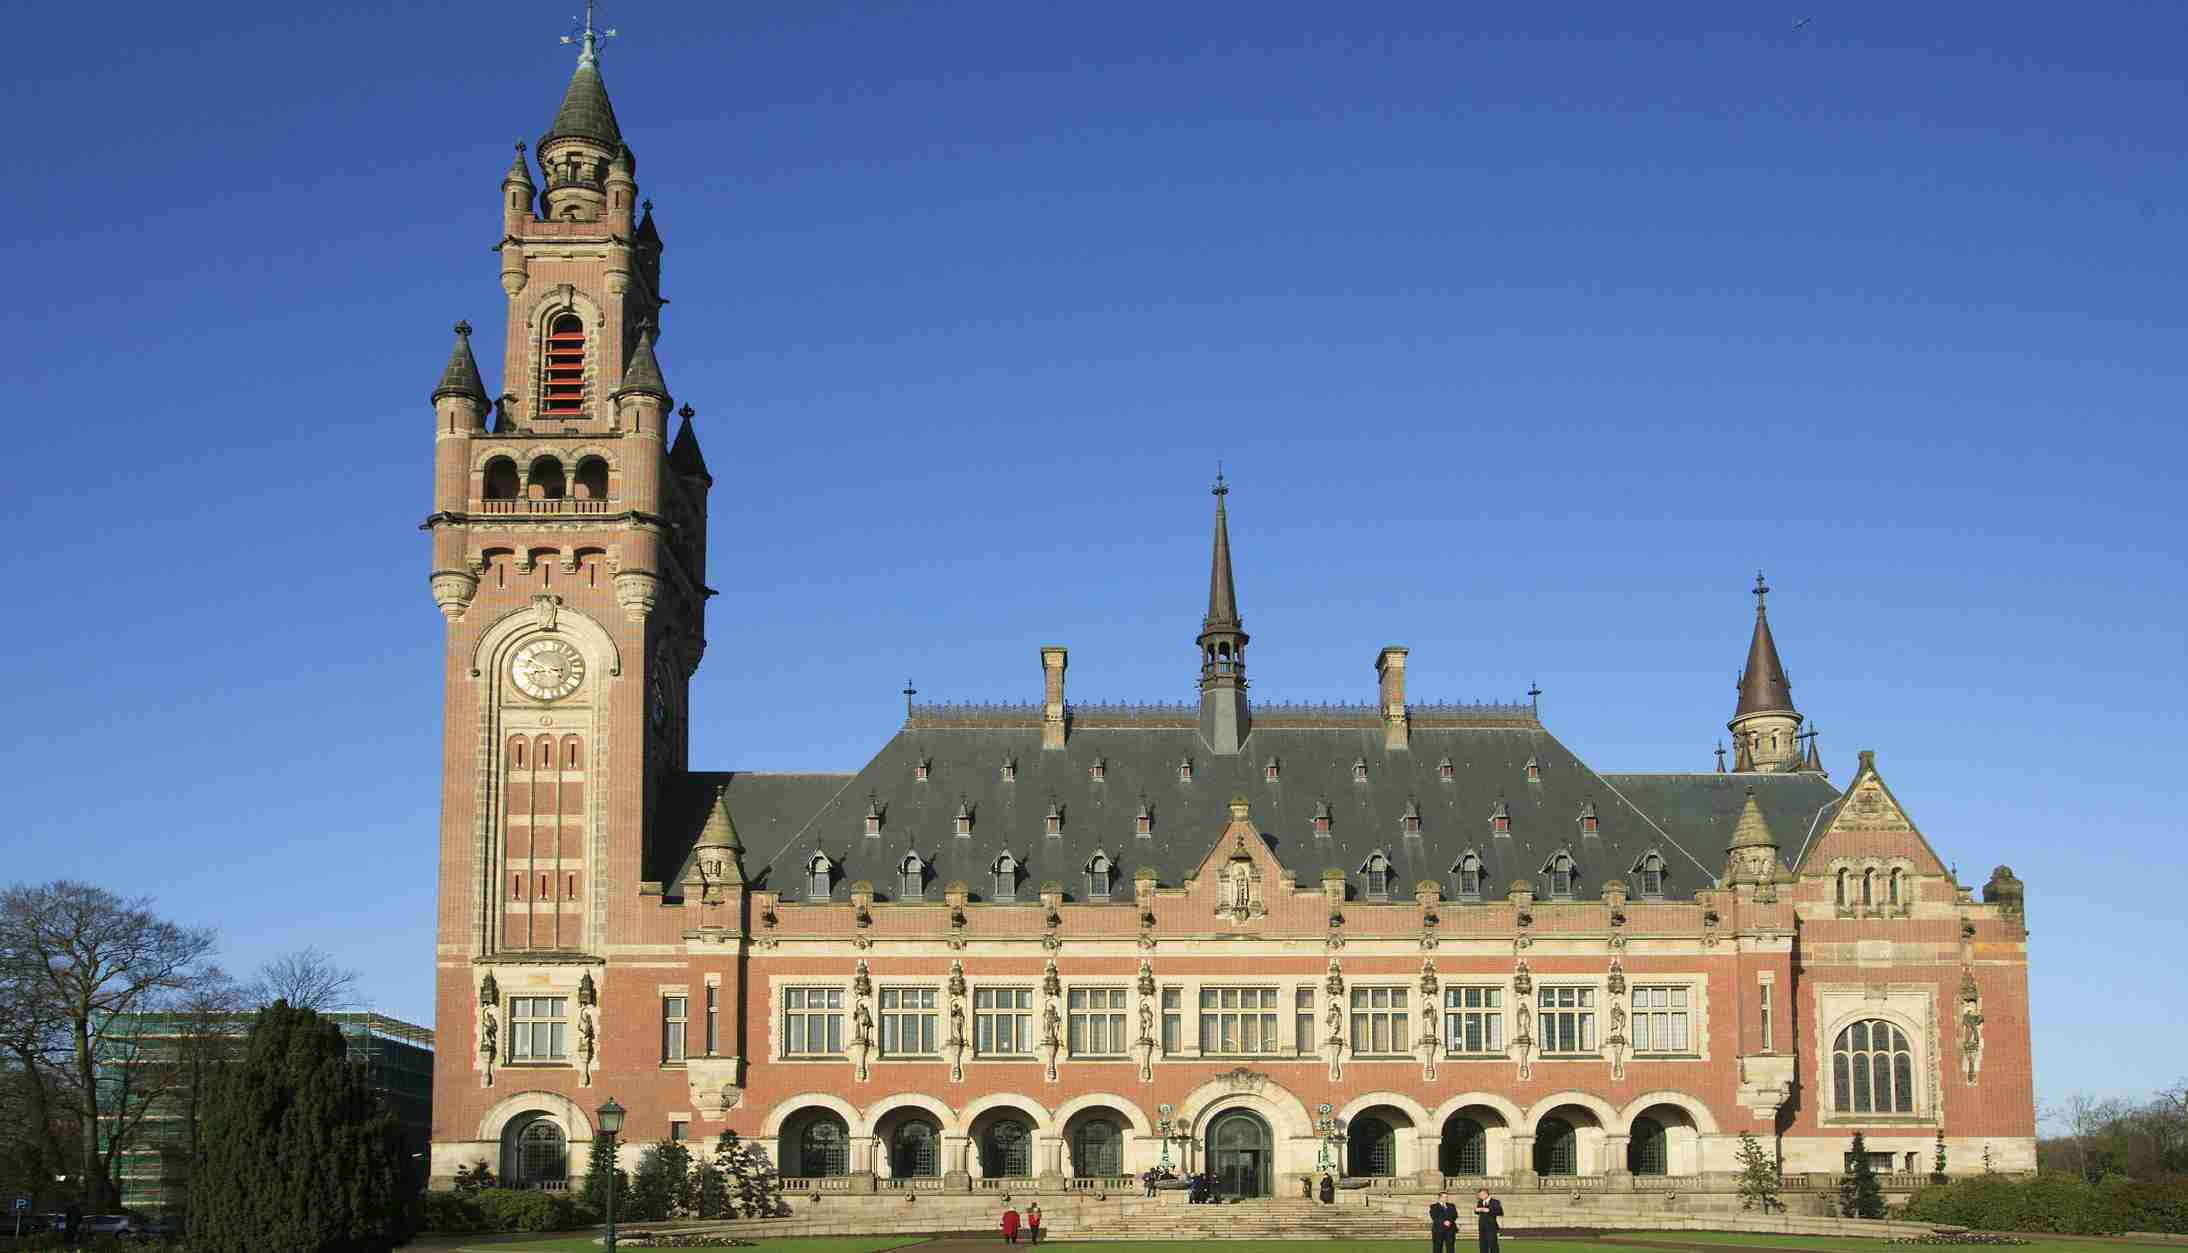 A general view of the exterior of the Peace Palace, seat of the International Court of Justice in The Hague, the Netherlands April 12, 2006. - RTXOHKM